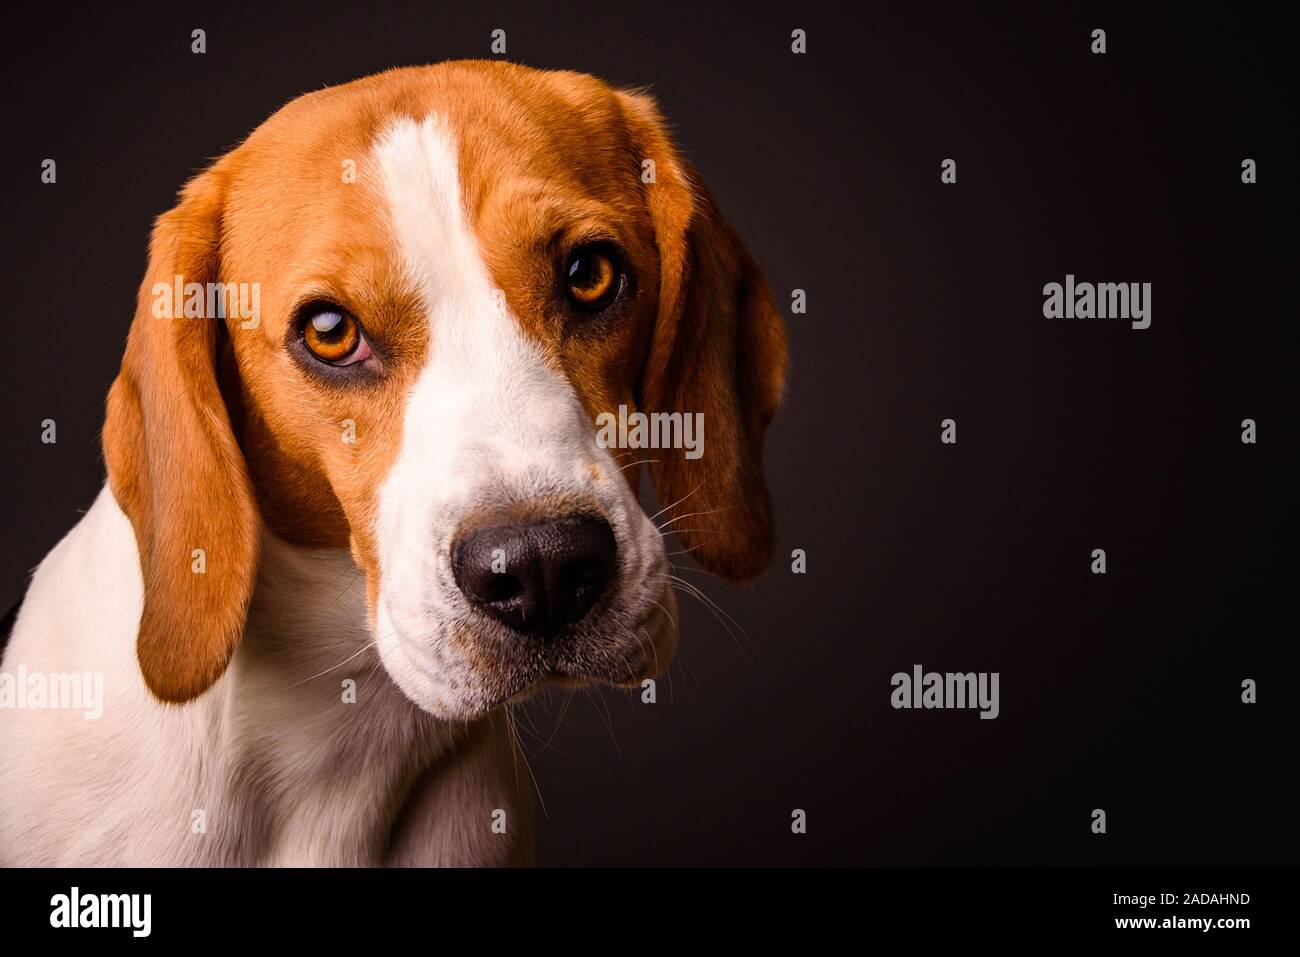 Beagle Dog Portrait On A Black Background Isolated Studio Closeup Detail Like Painting Stock Photo Alamy